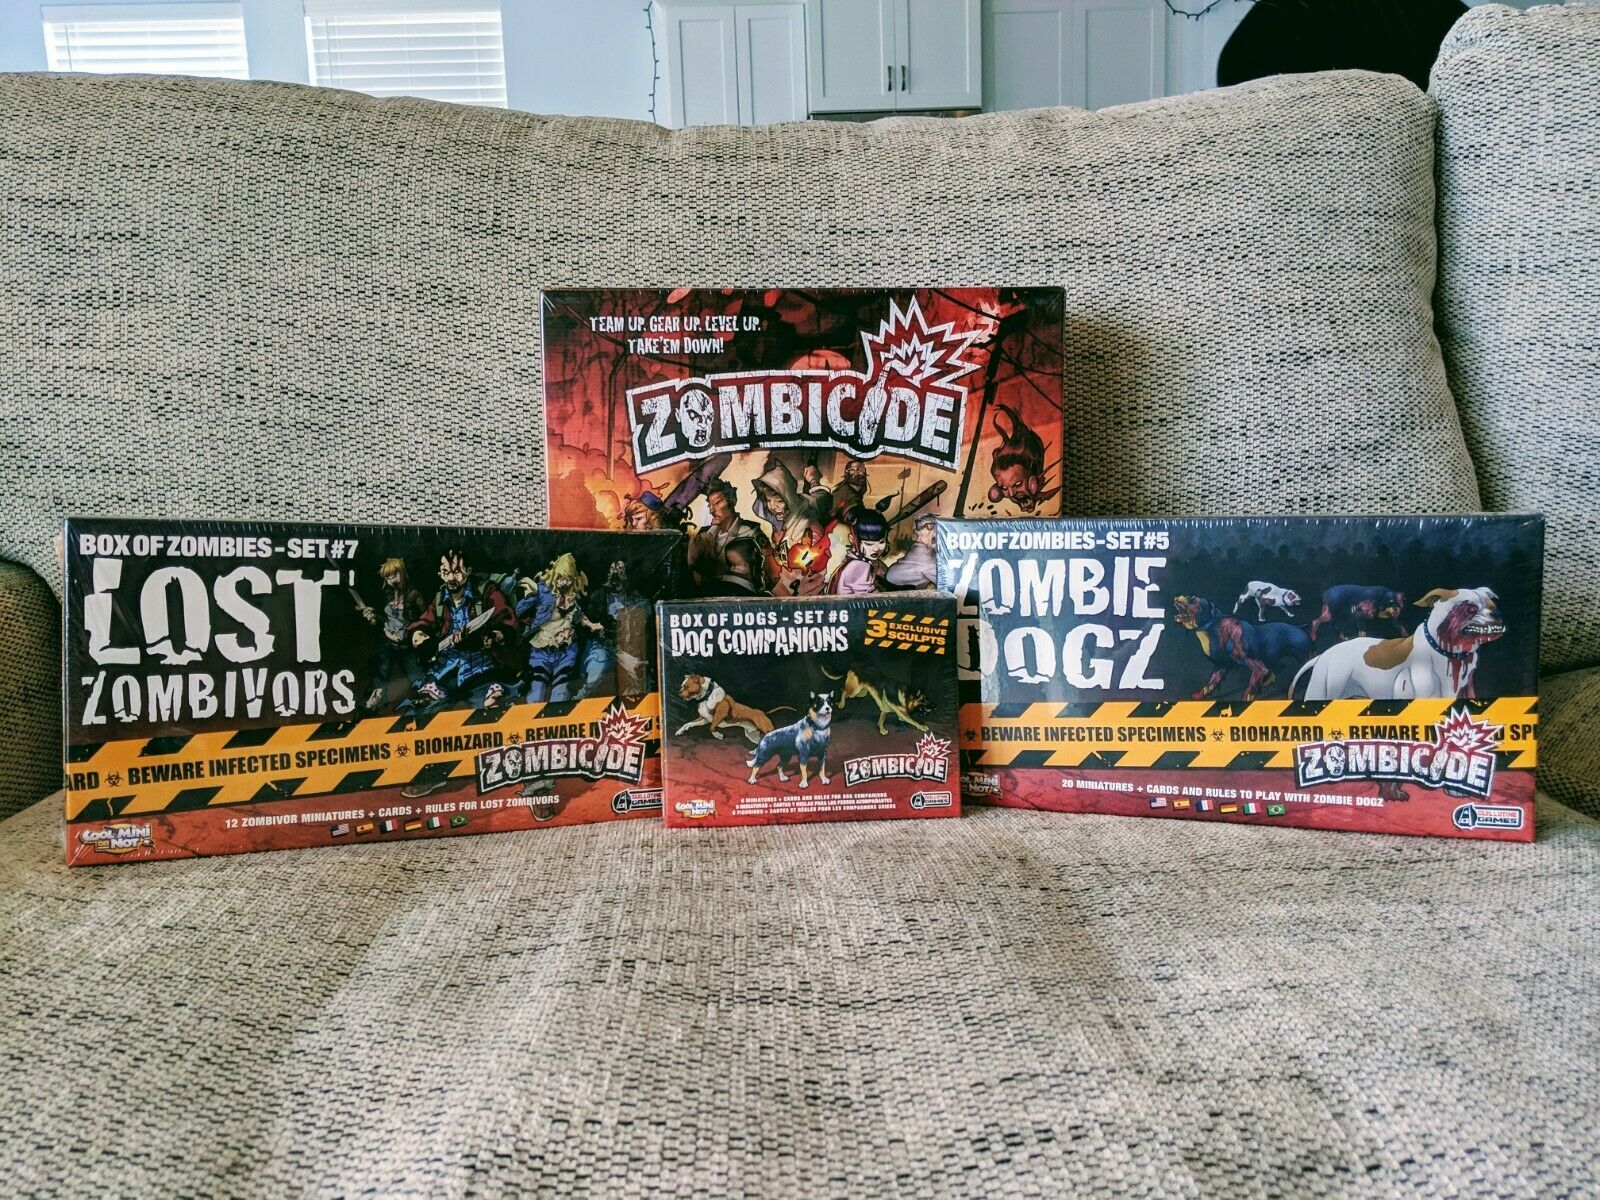 Zombicide Zombicide Zombicide Season 1 with Box of Zombies and BRAND NEW-SHRINK WRAPPED 7ad200